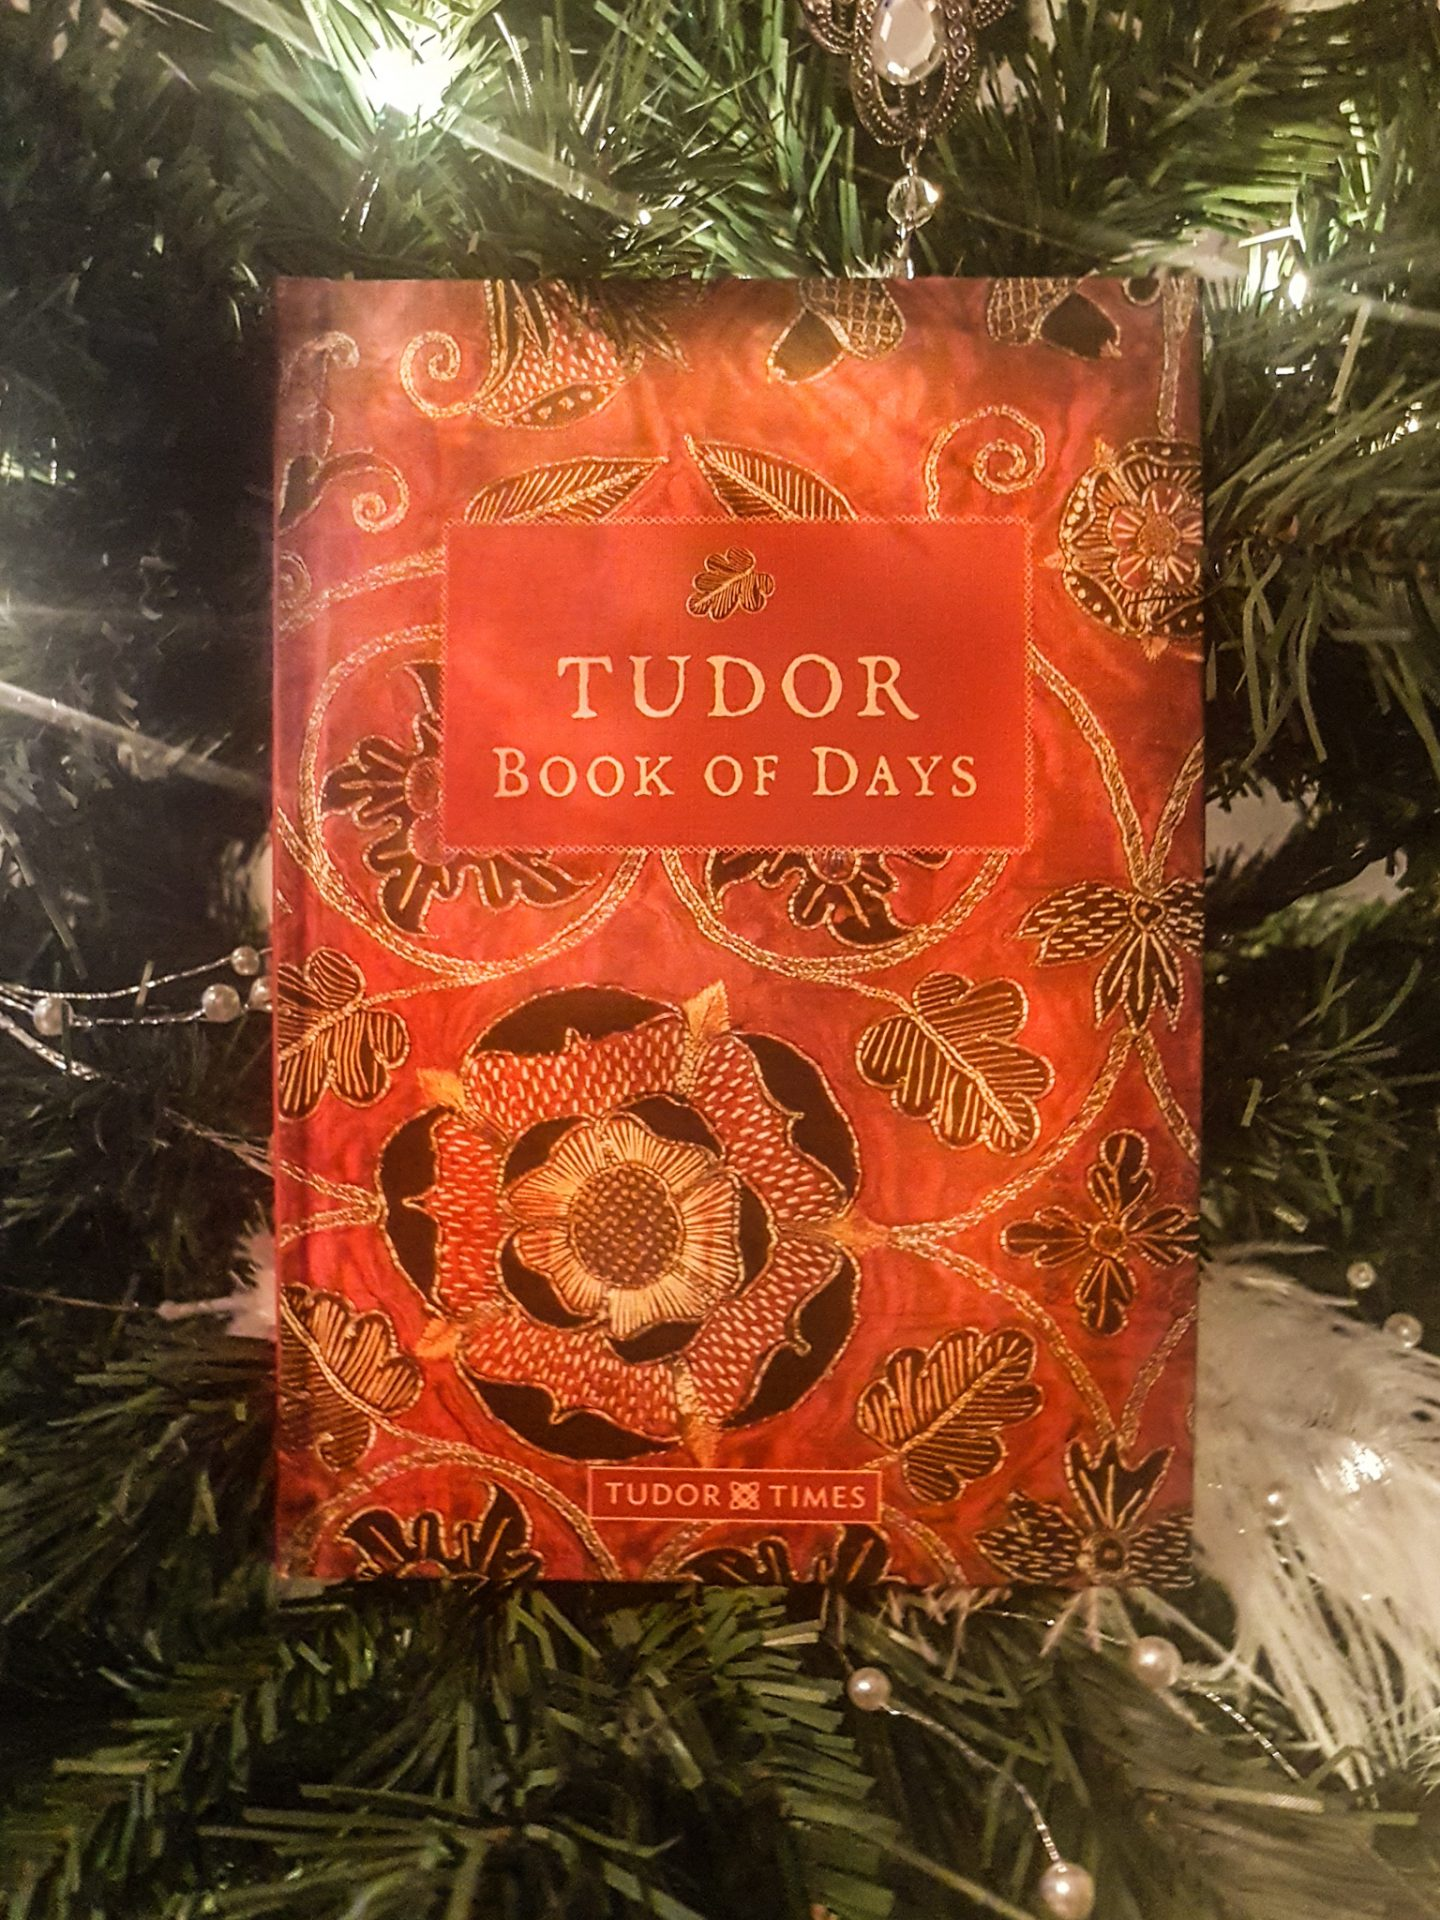 Planning for a Great 2019 with the Tudor Book of Days